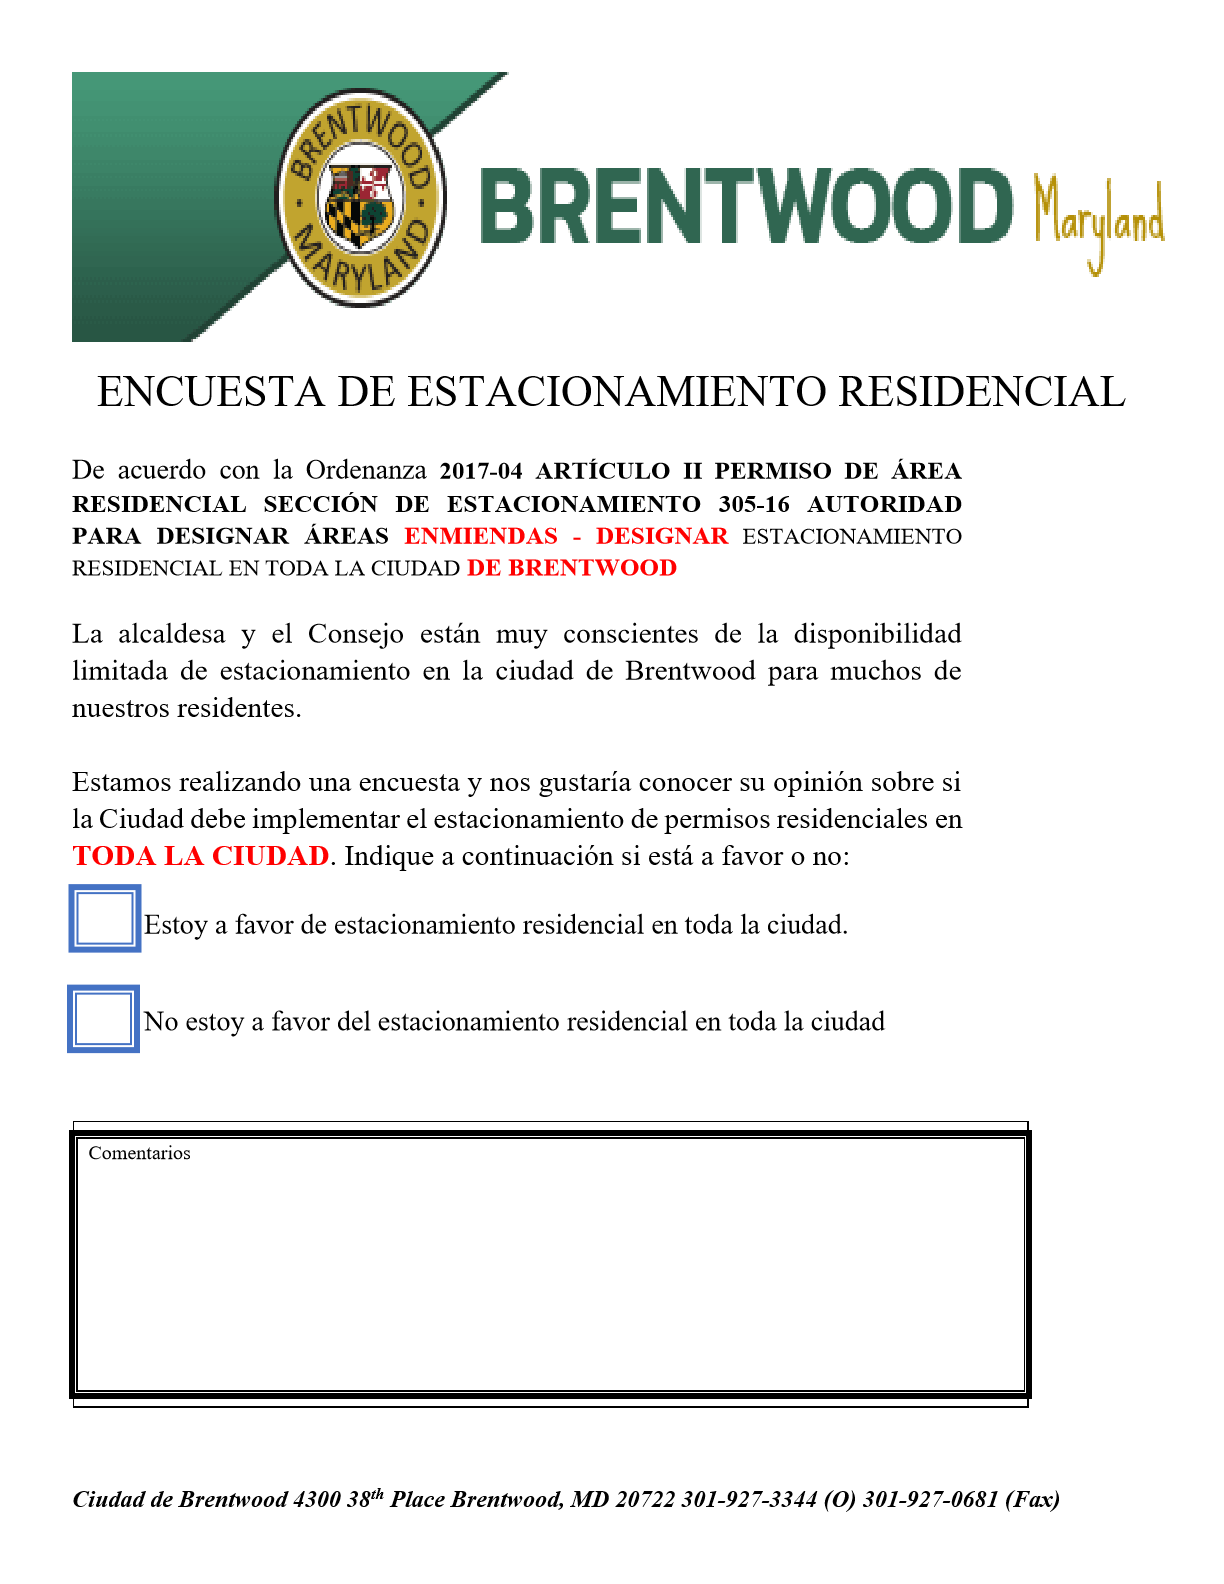 Residential Parking Survey Spanish